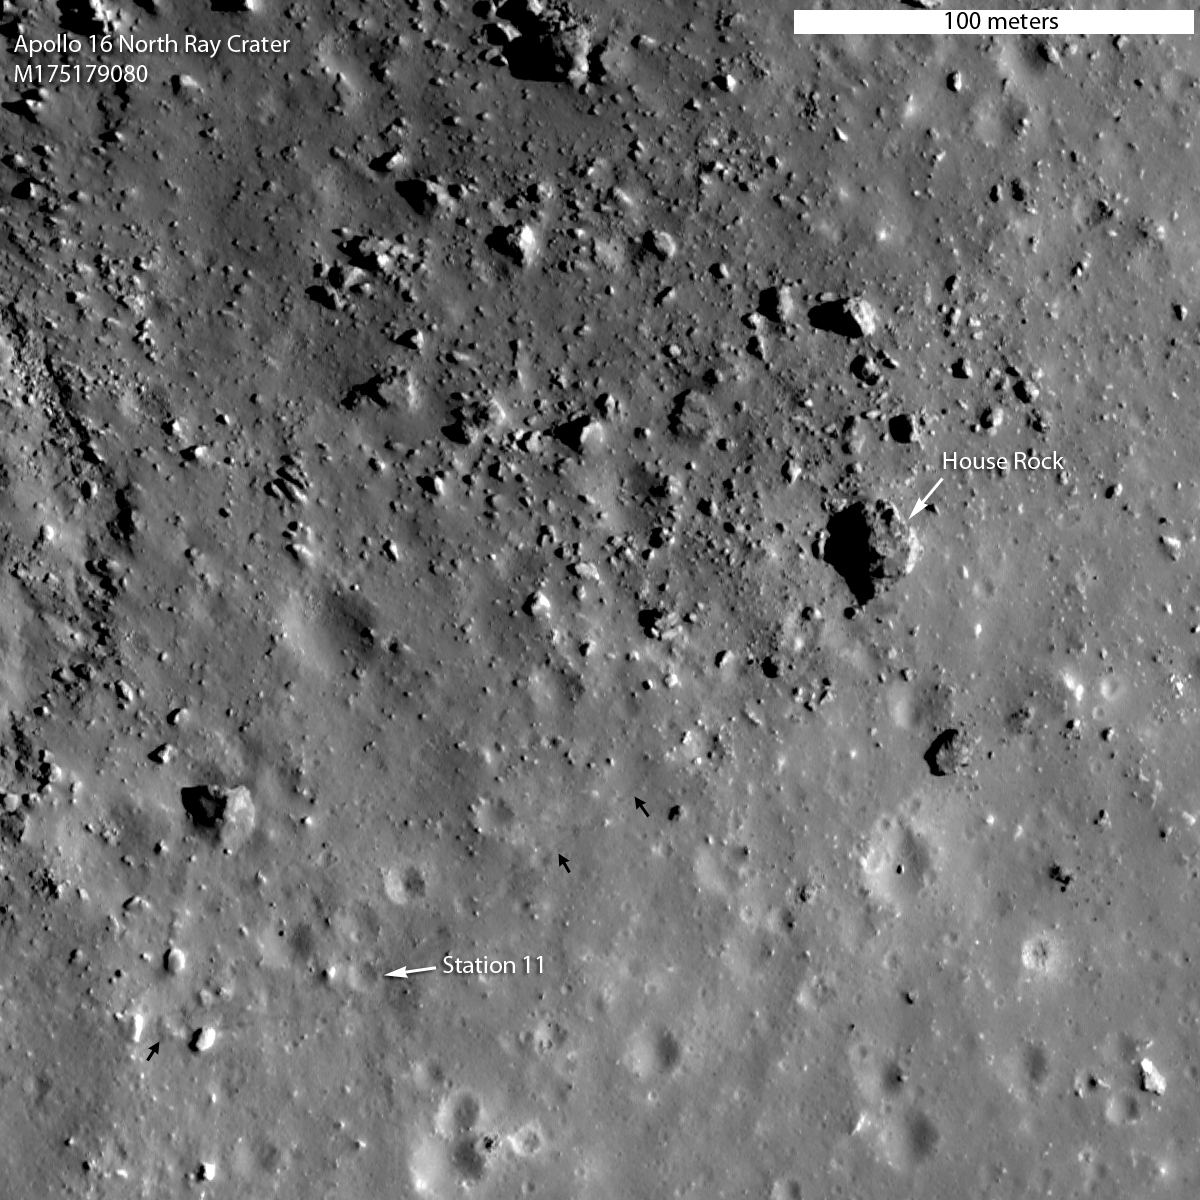 Apollo 16: Moon's North Ray Crater